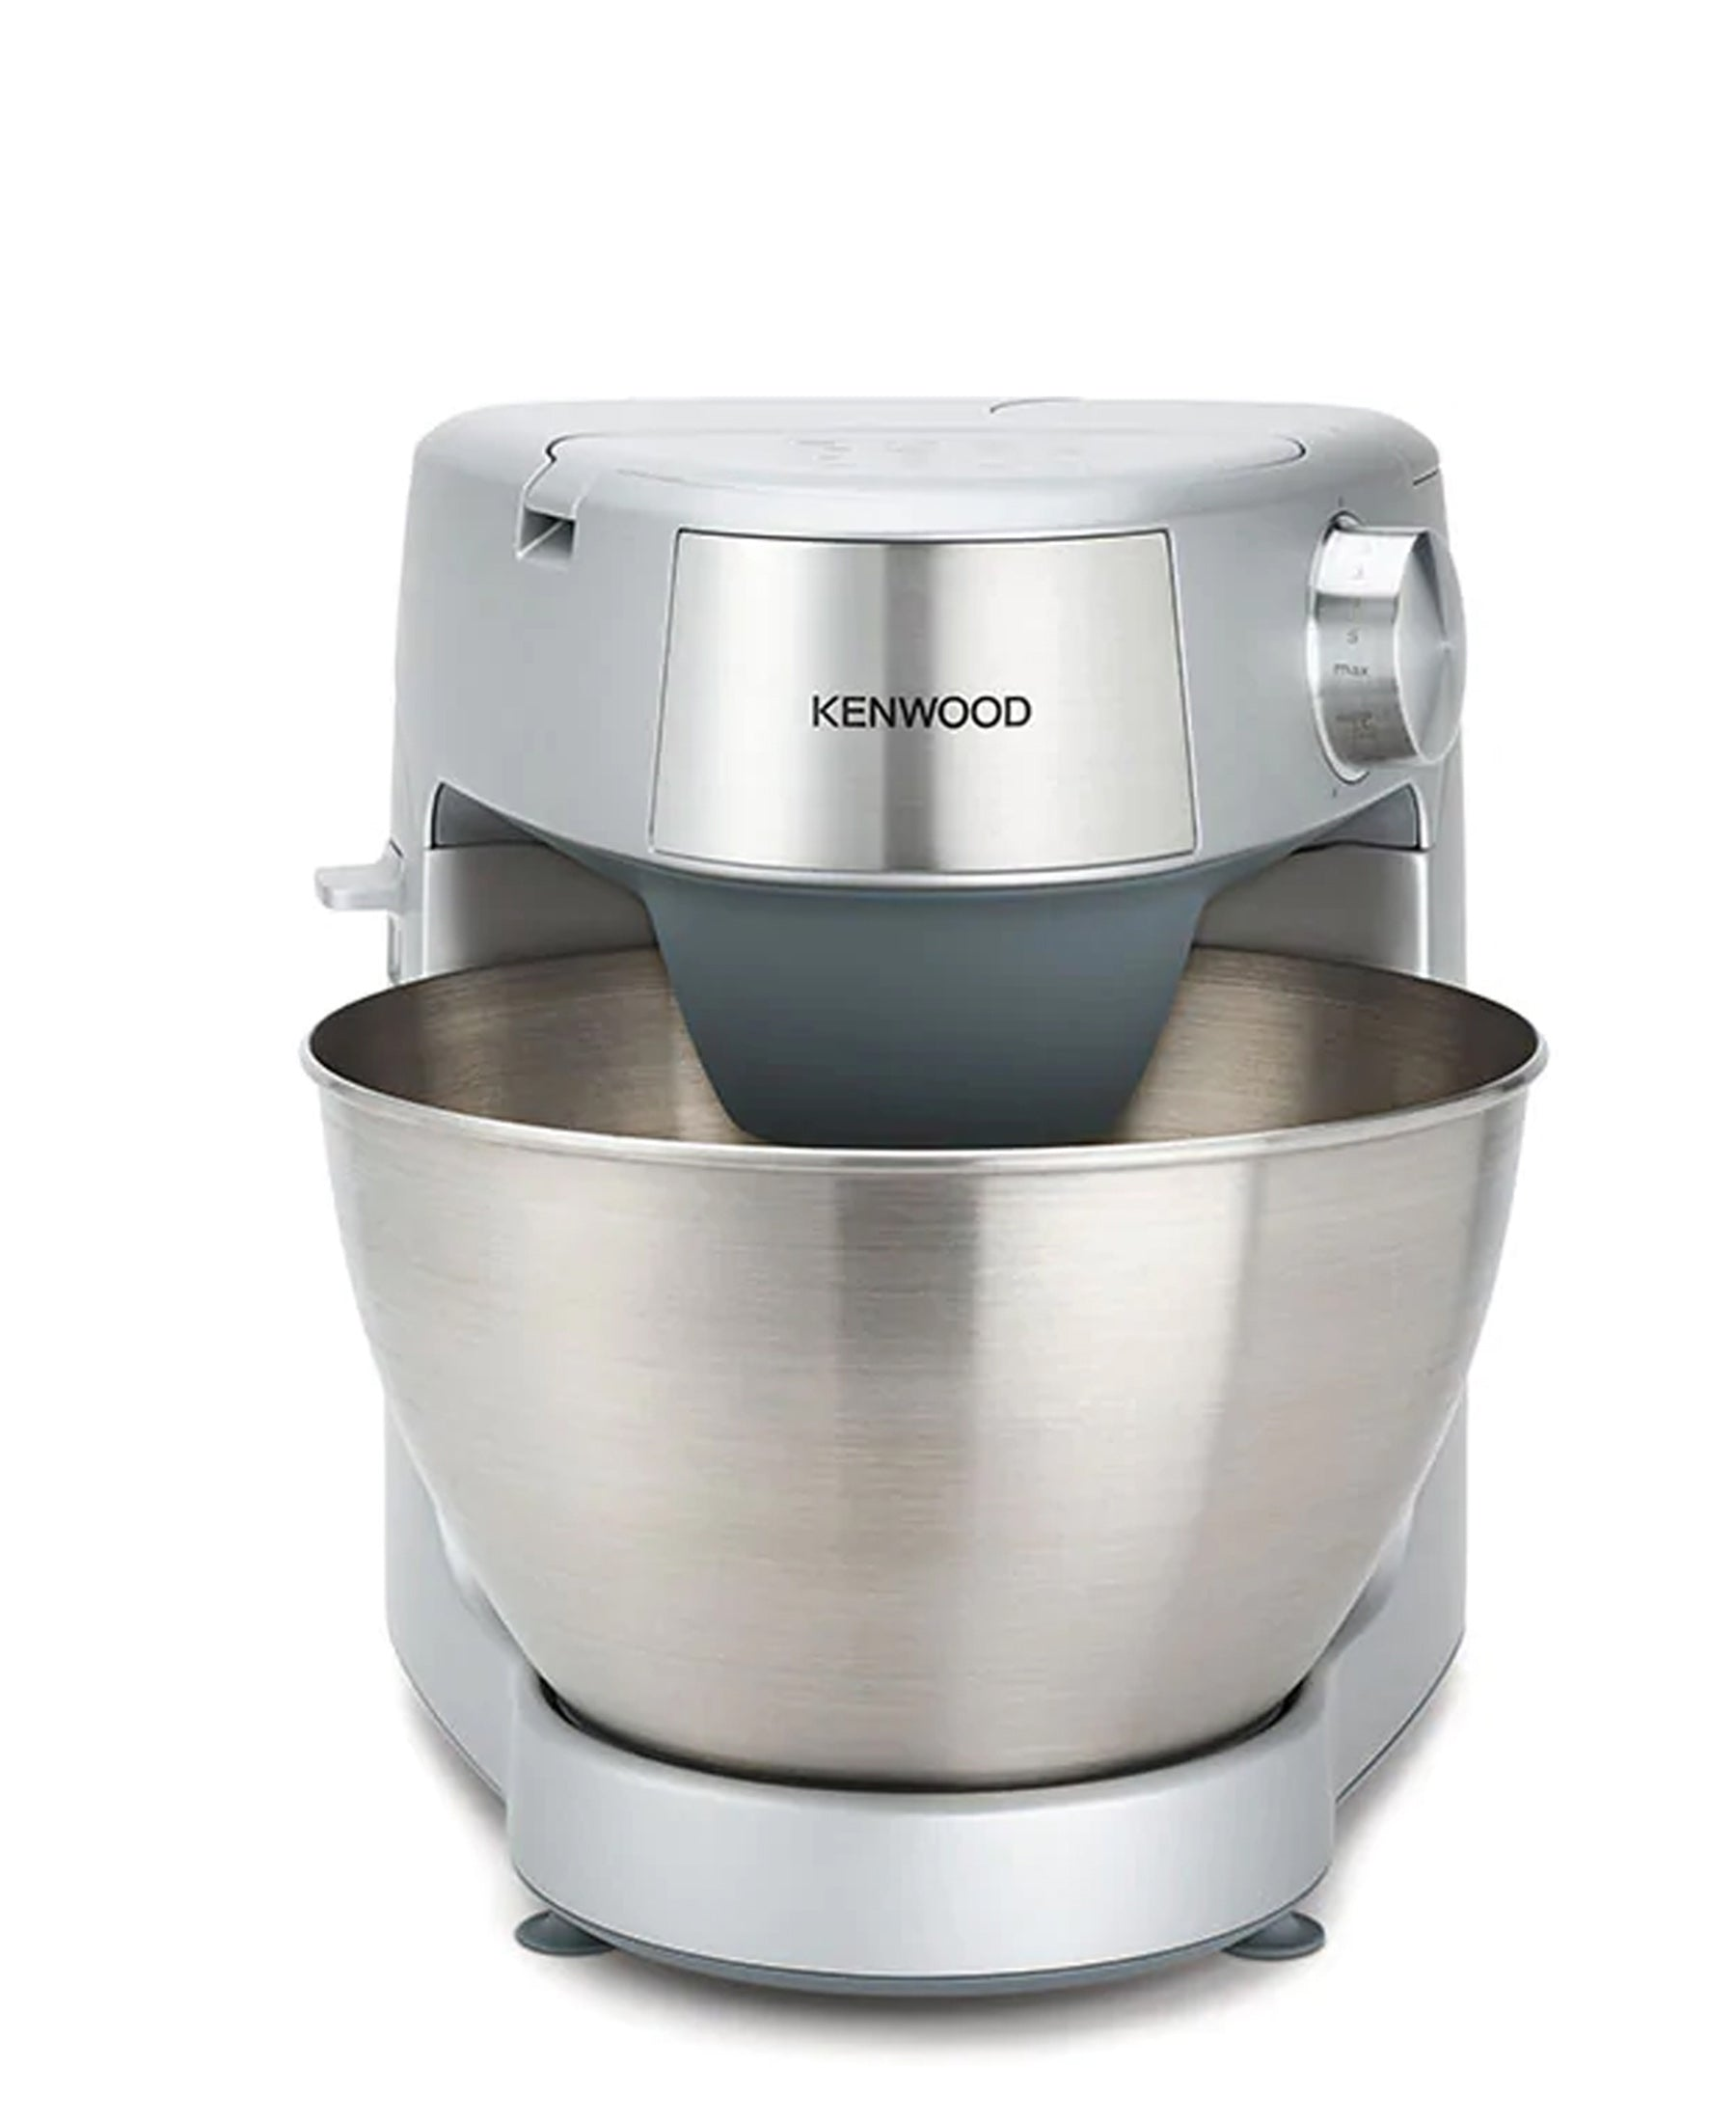 Kenwood Prospero Plus Stand Mixer With Attachments